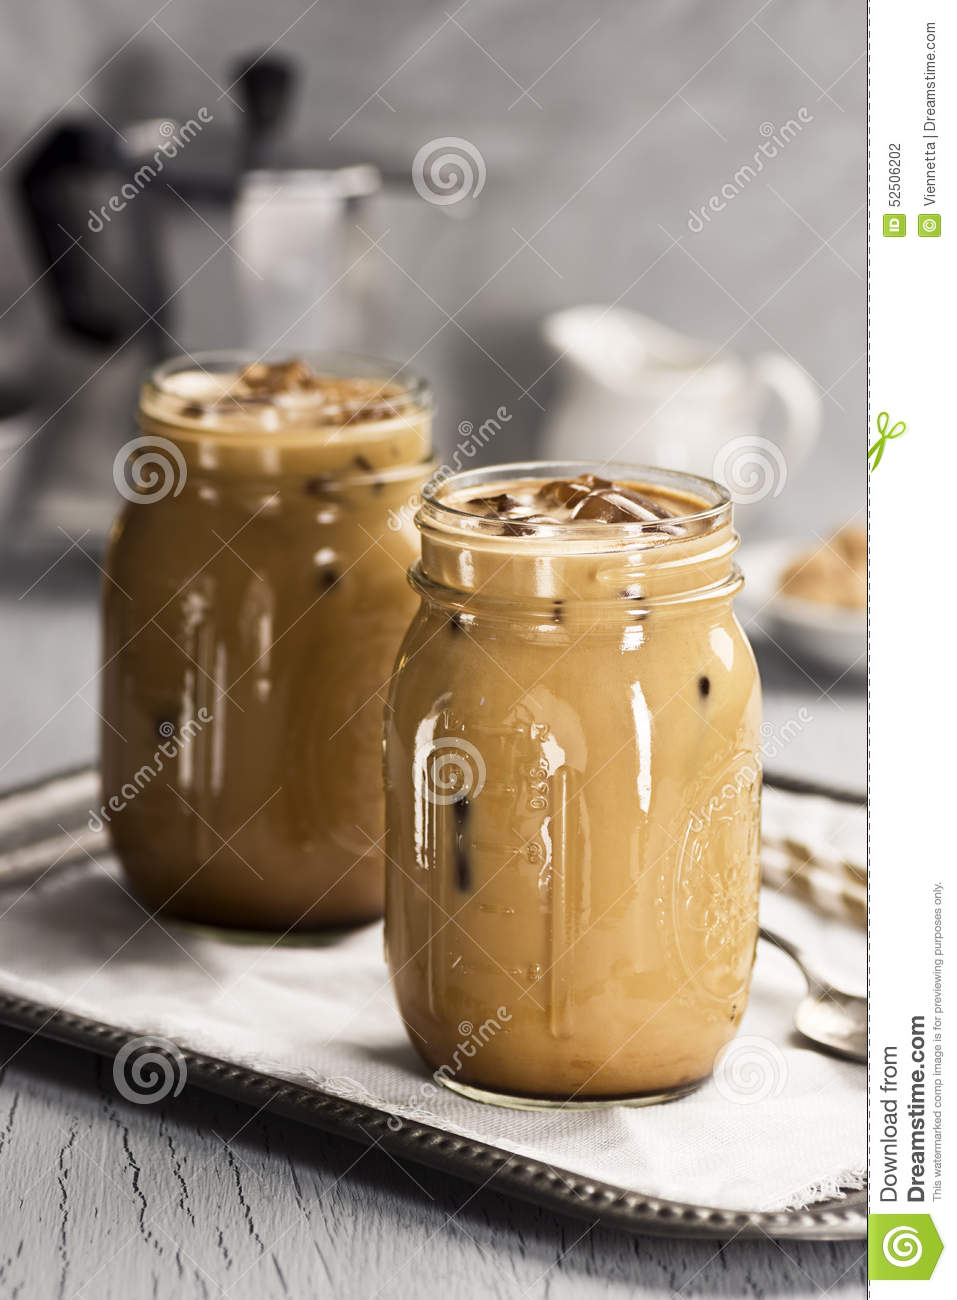 Image Result For How To Make Coffee Ice Cream With Vanilla Ice Creama